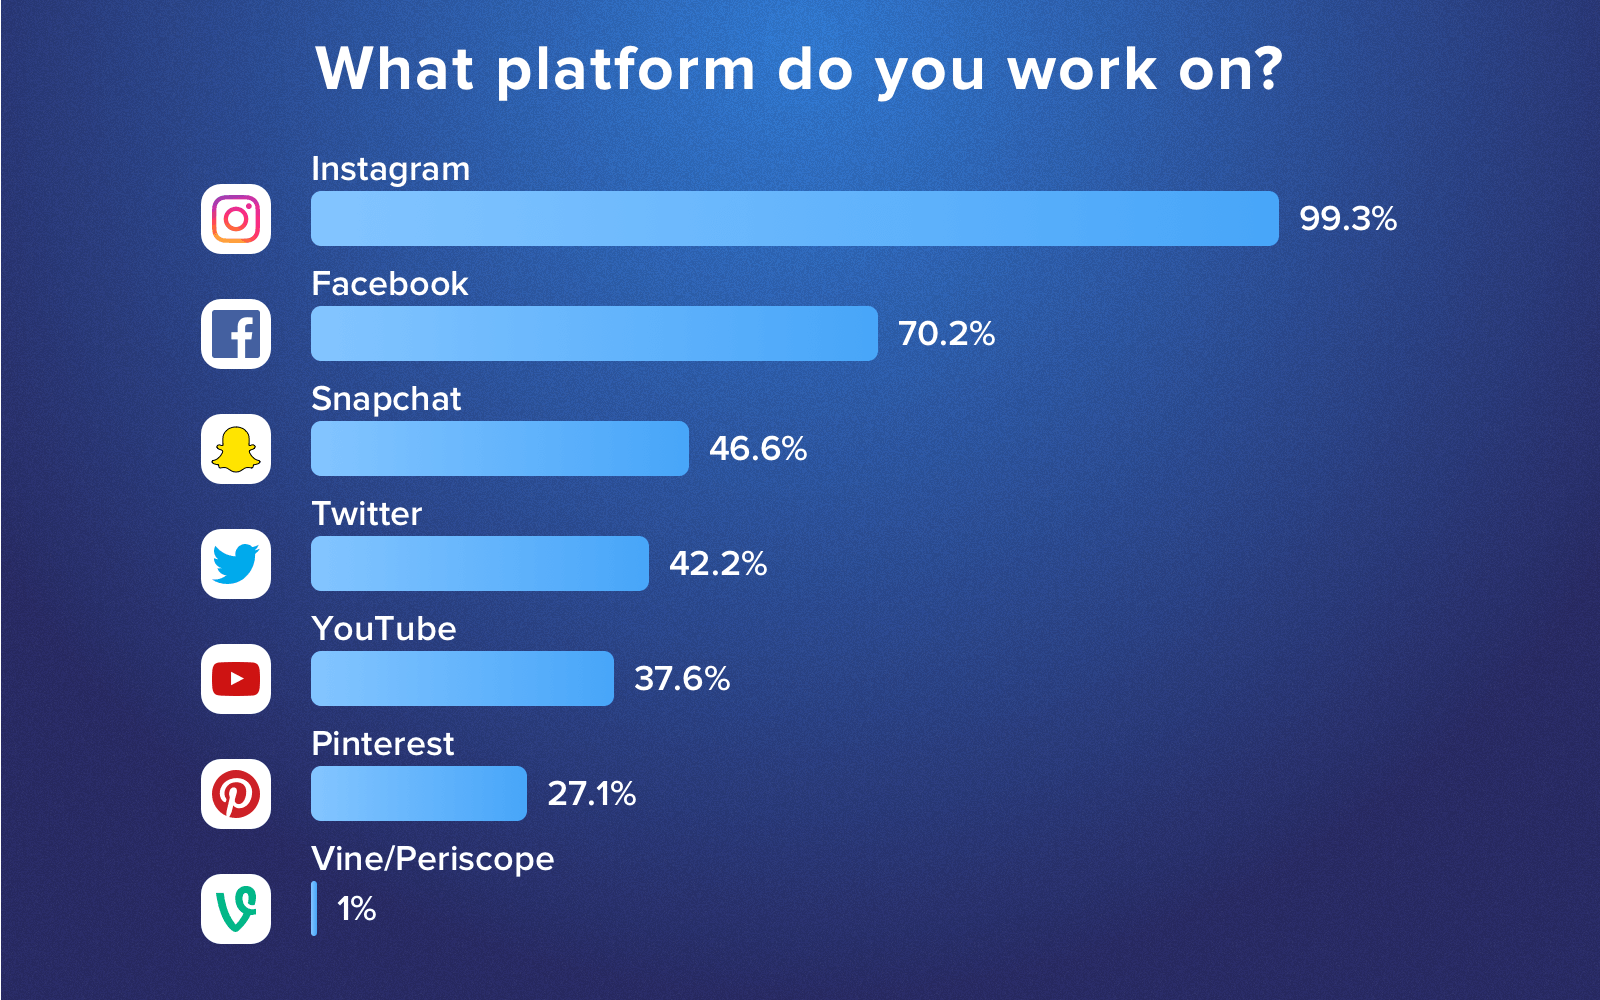 Influencer marketing trends: What platform influencers prefer to work on